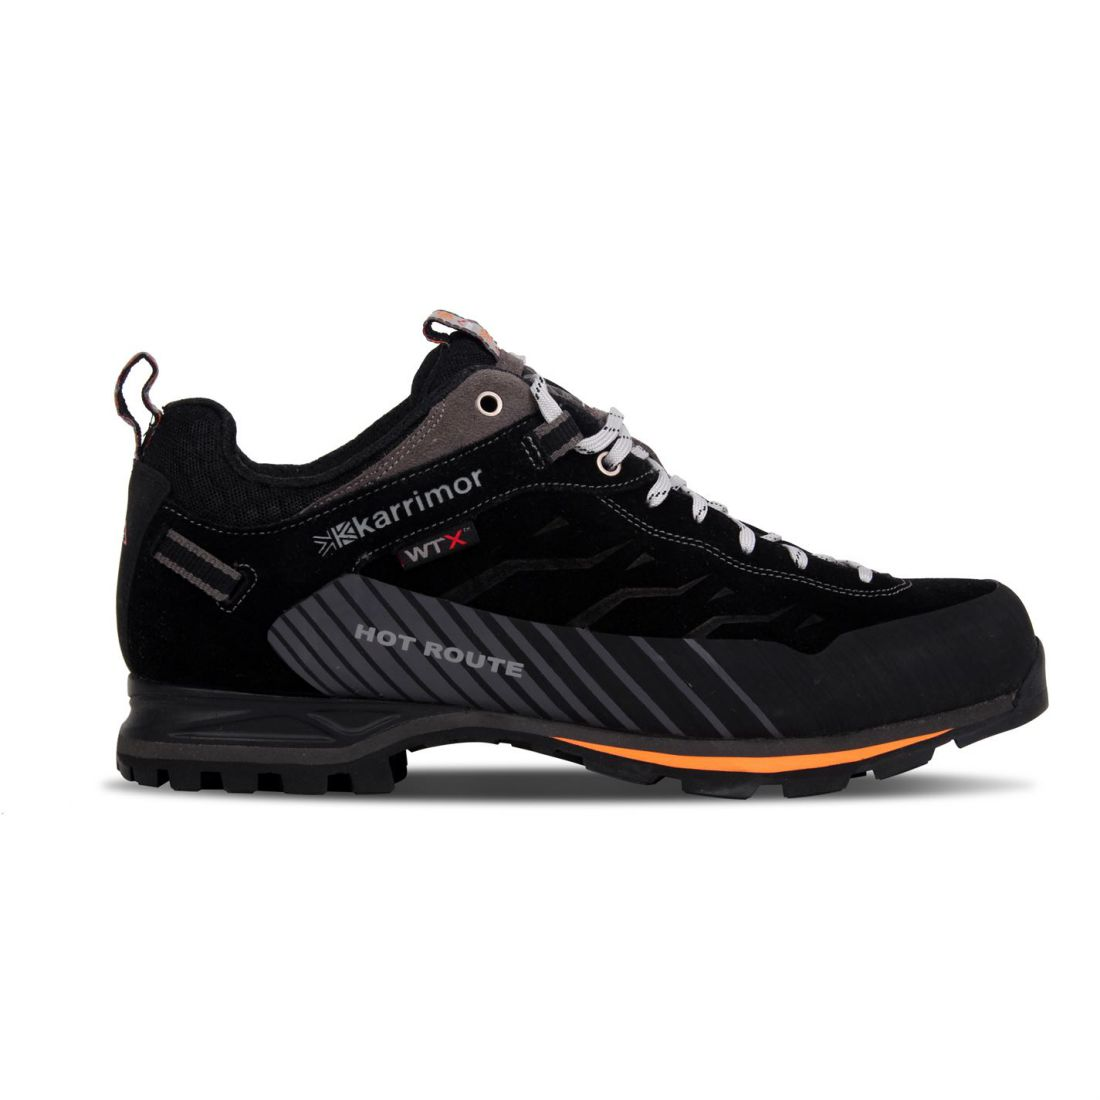 Karrimor Mens Hot Route WTX Walking schuhe Waterproof Lace Up Breathable Leather